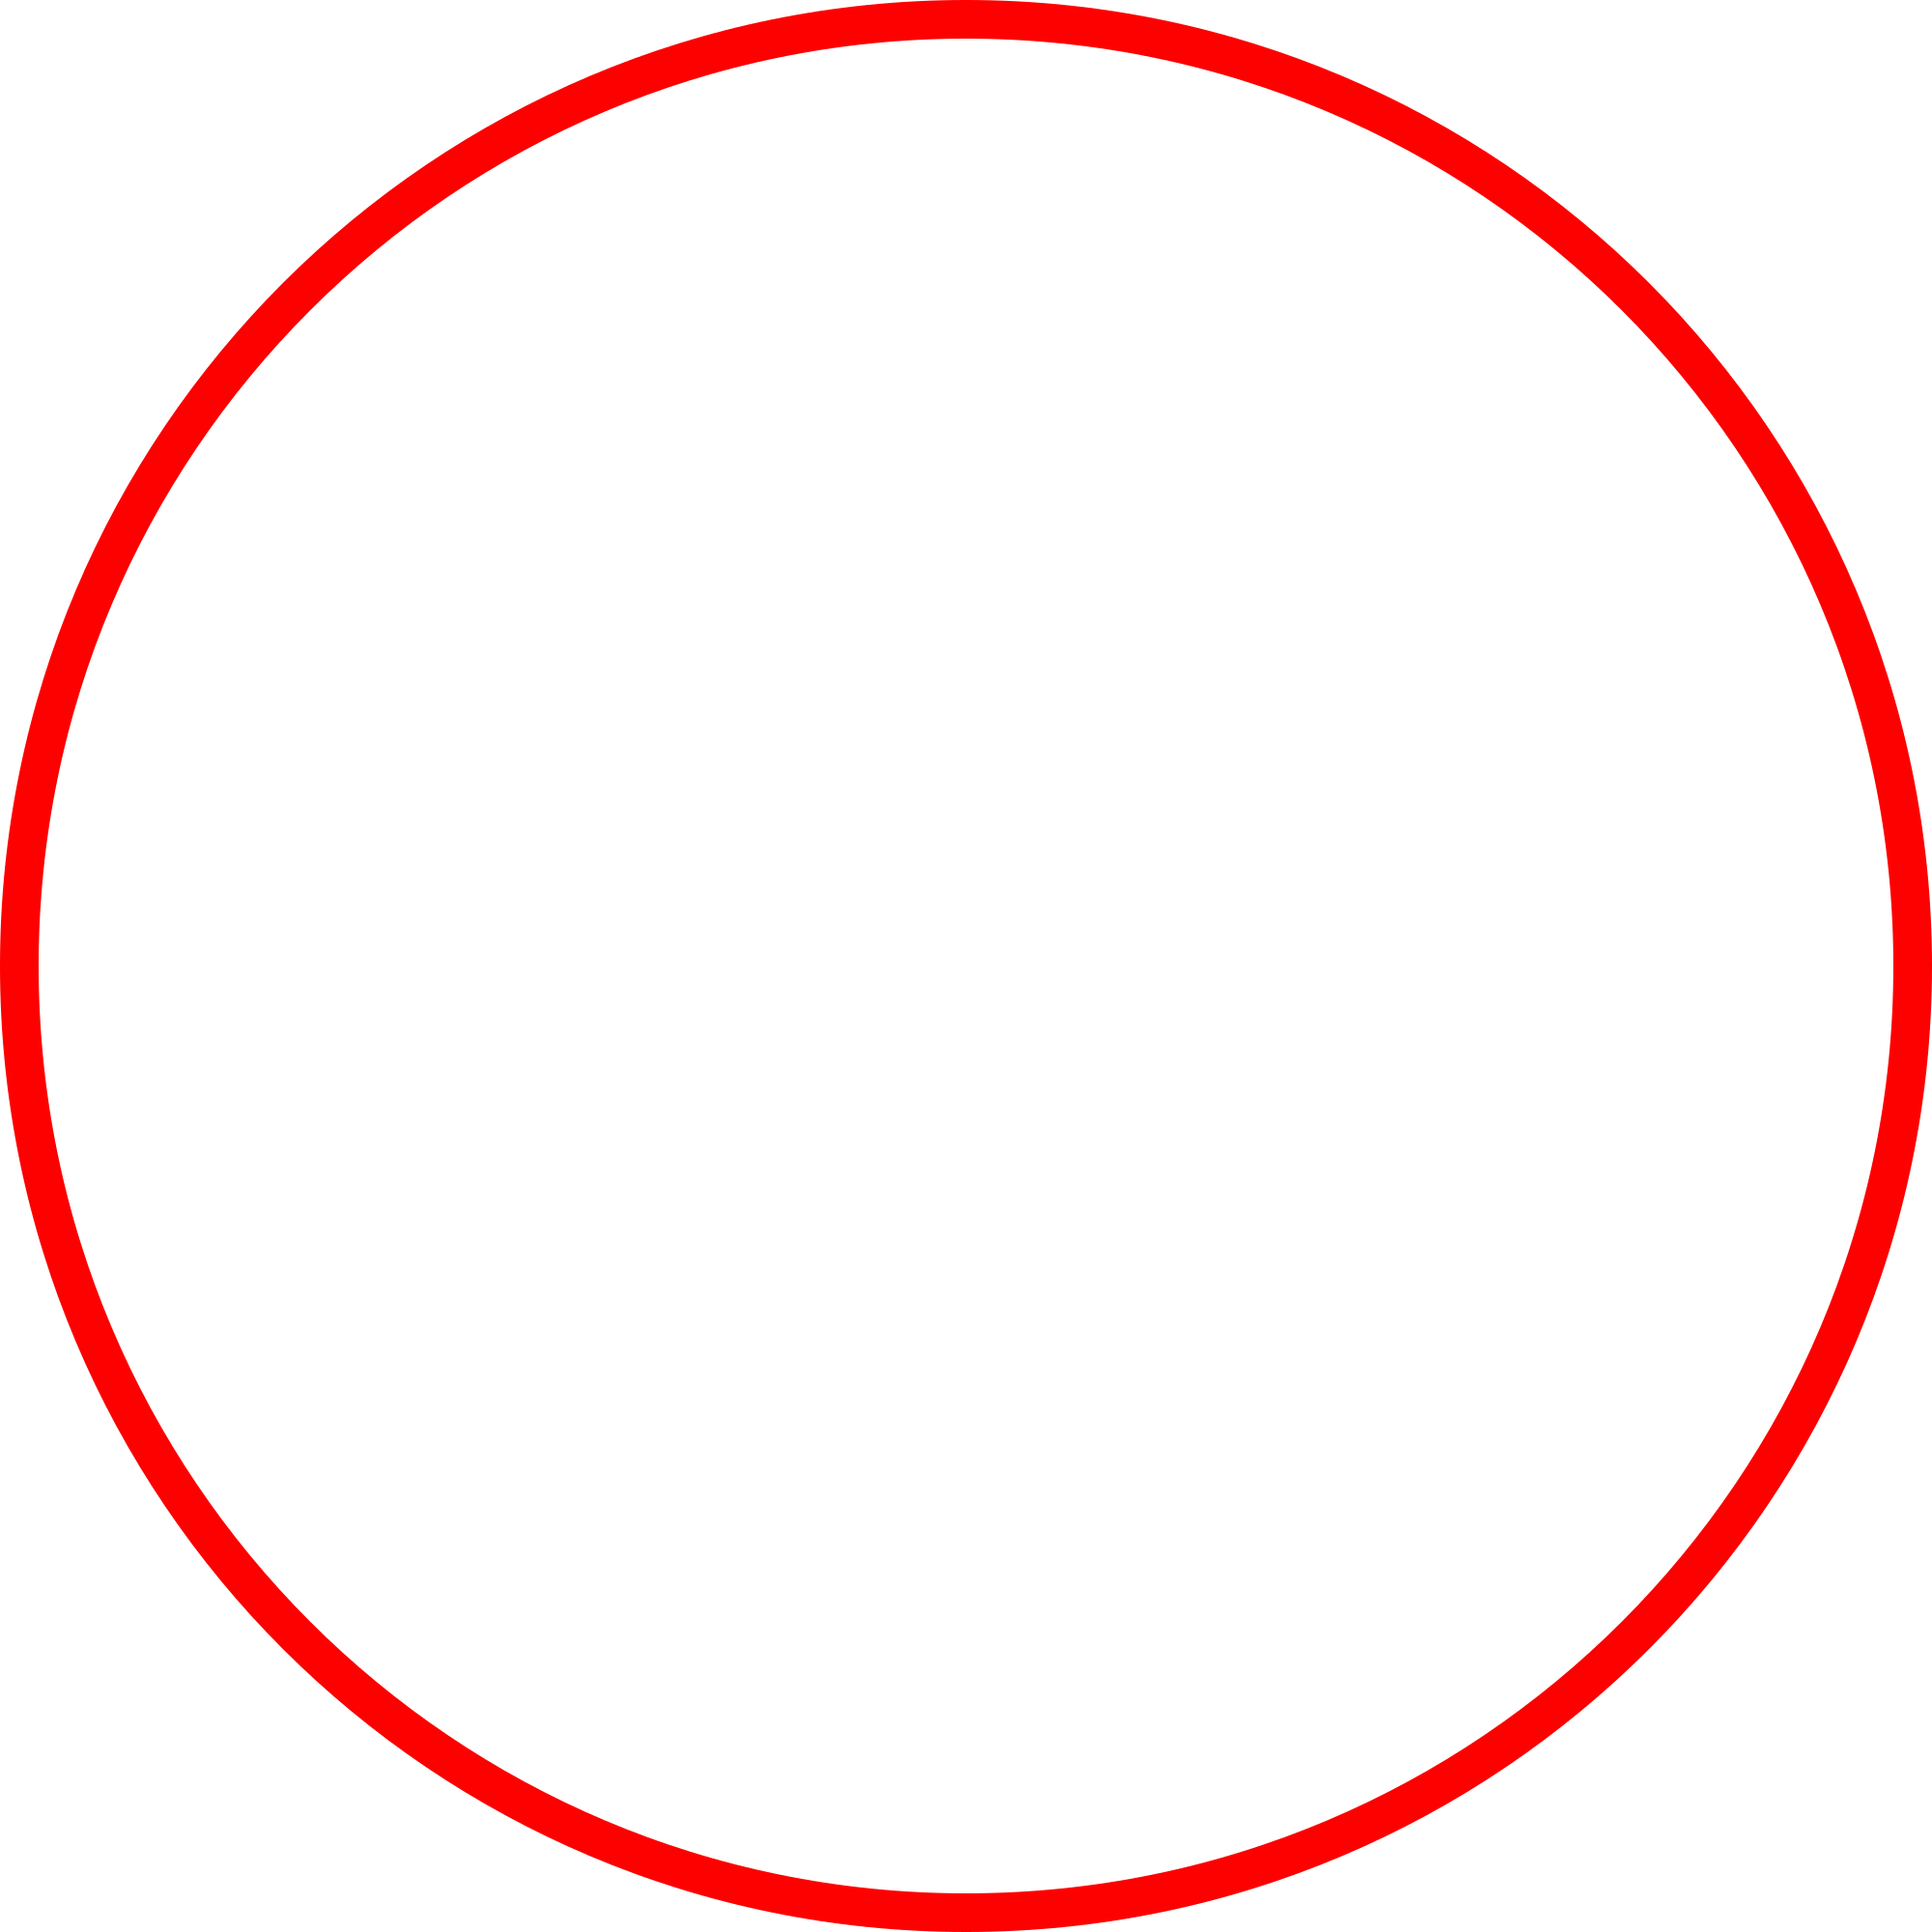 Red Circle Line Png #44653.